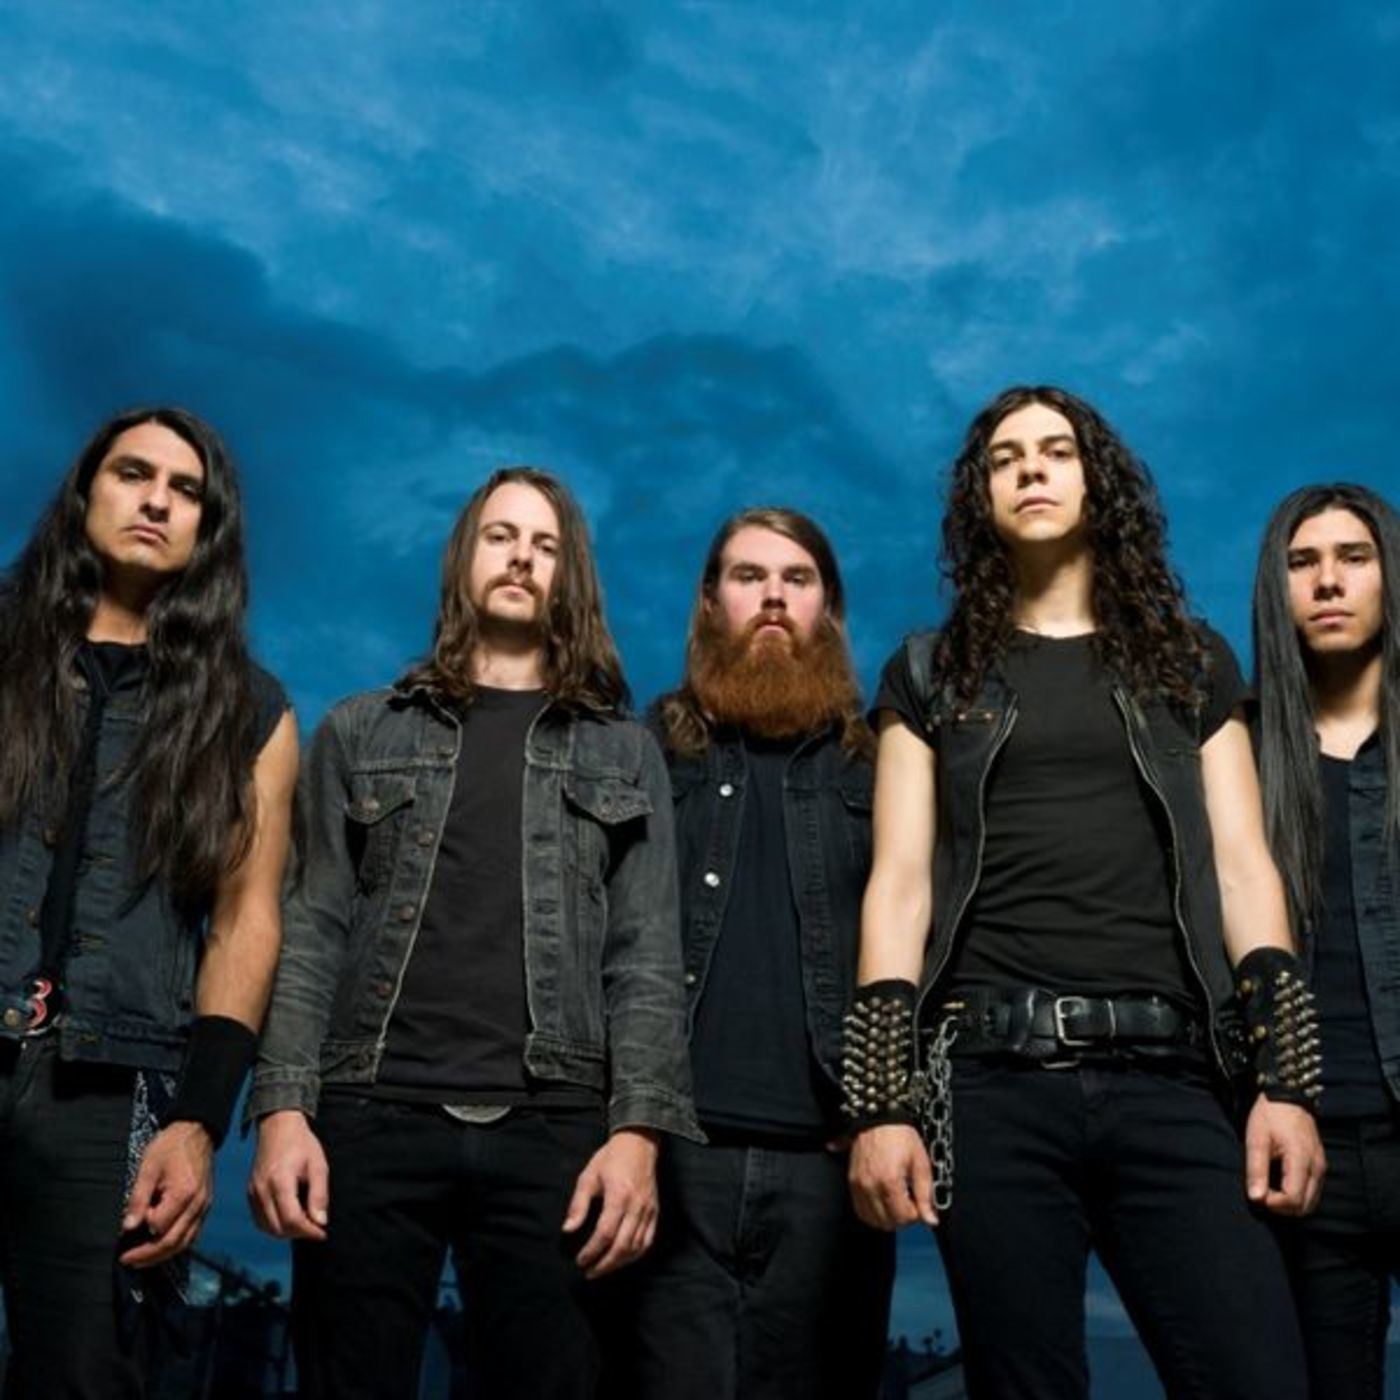 Eli Santana of Holy Grail: It's all about metal